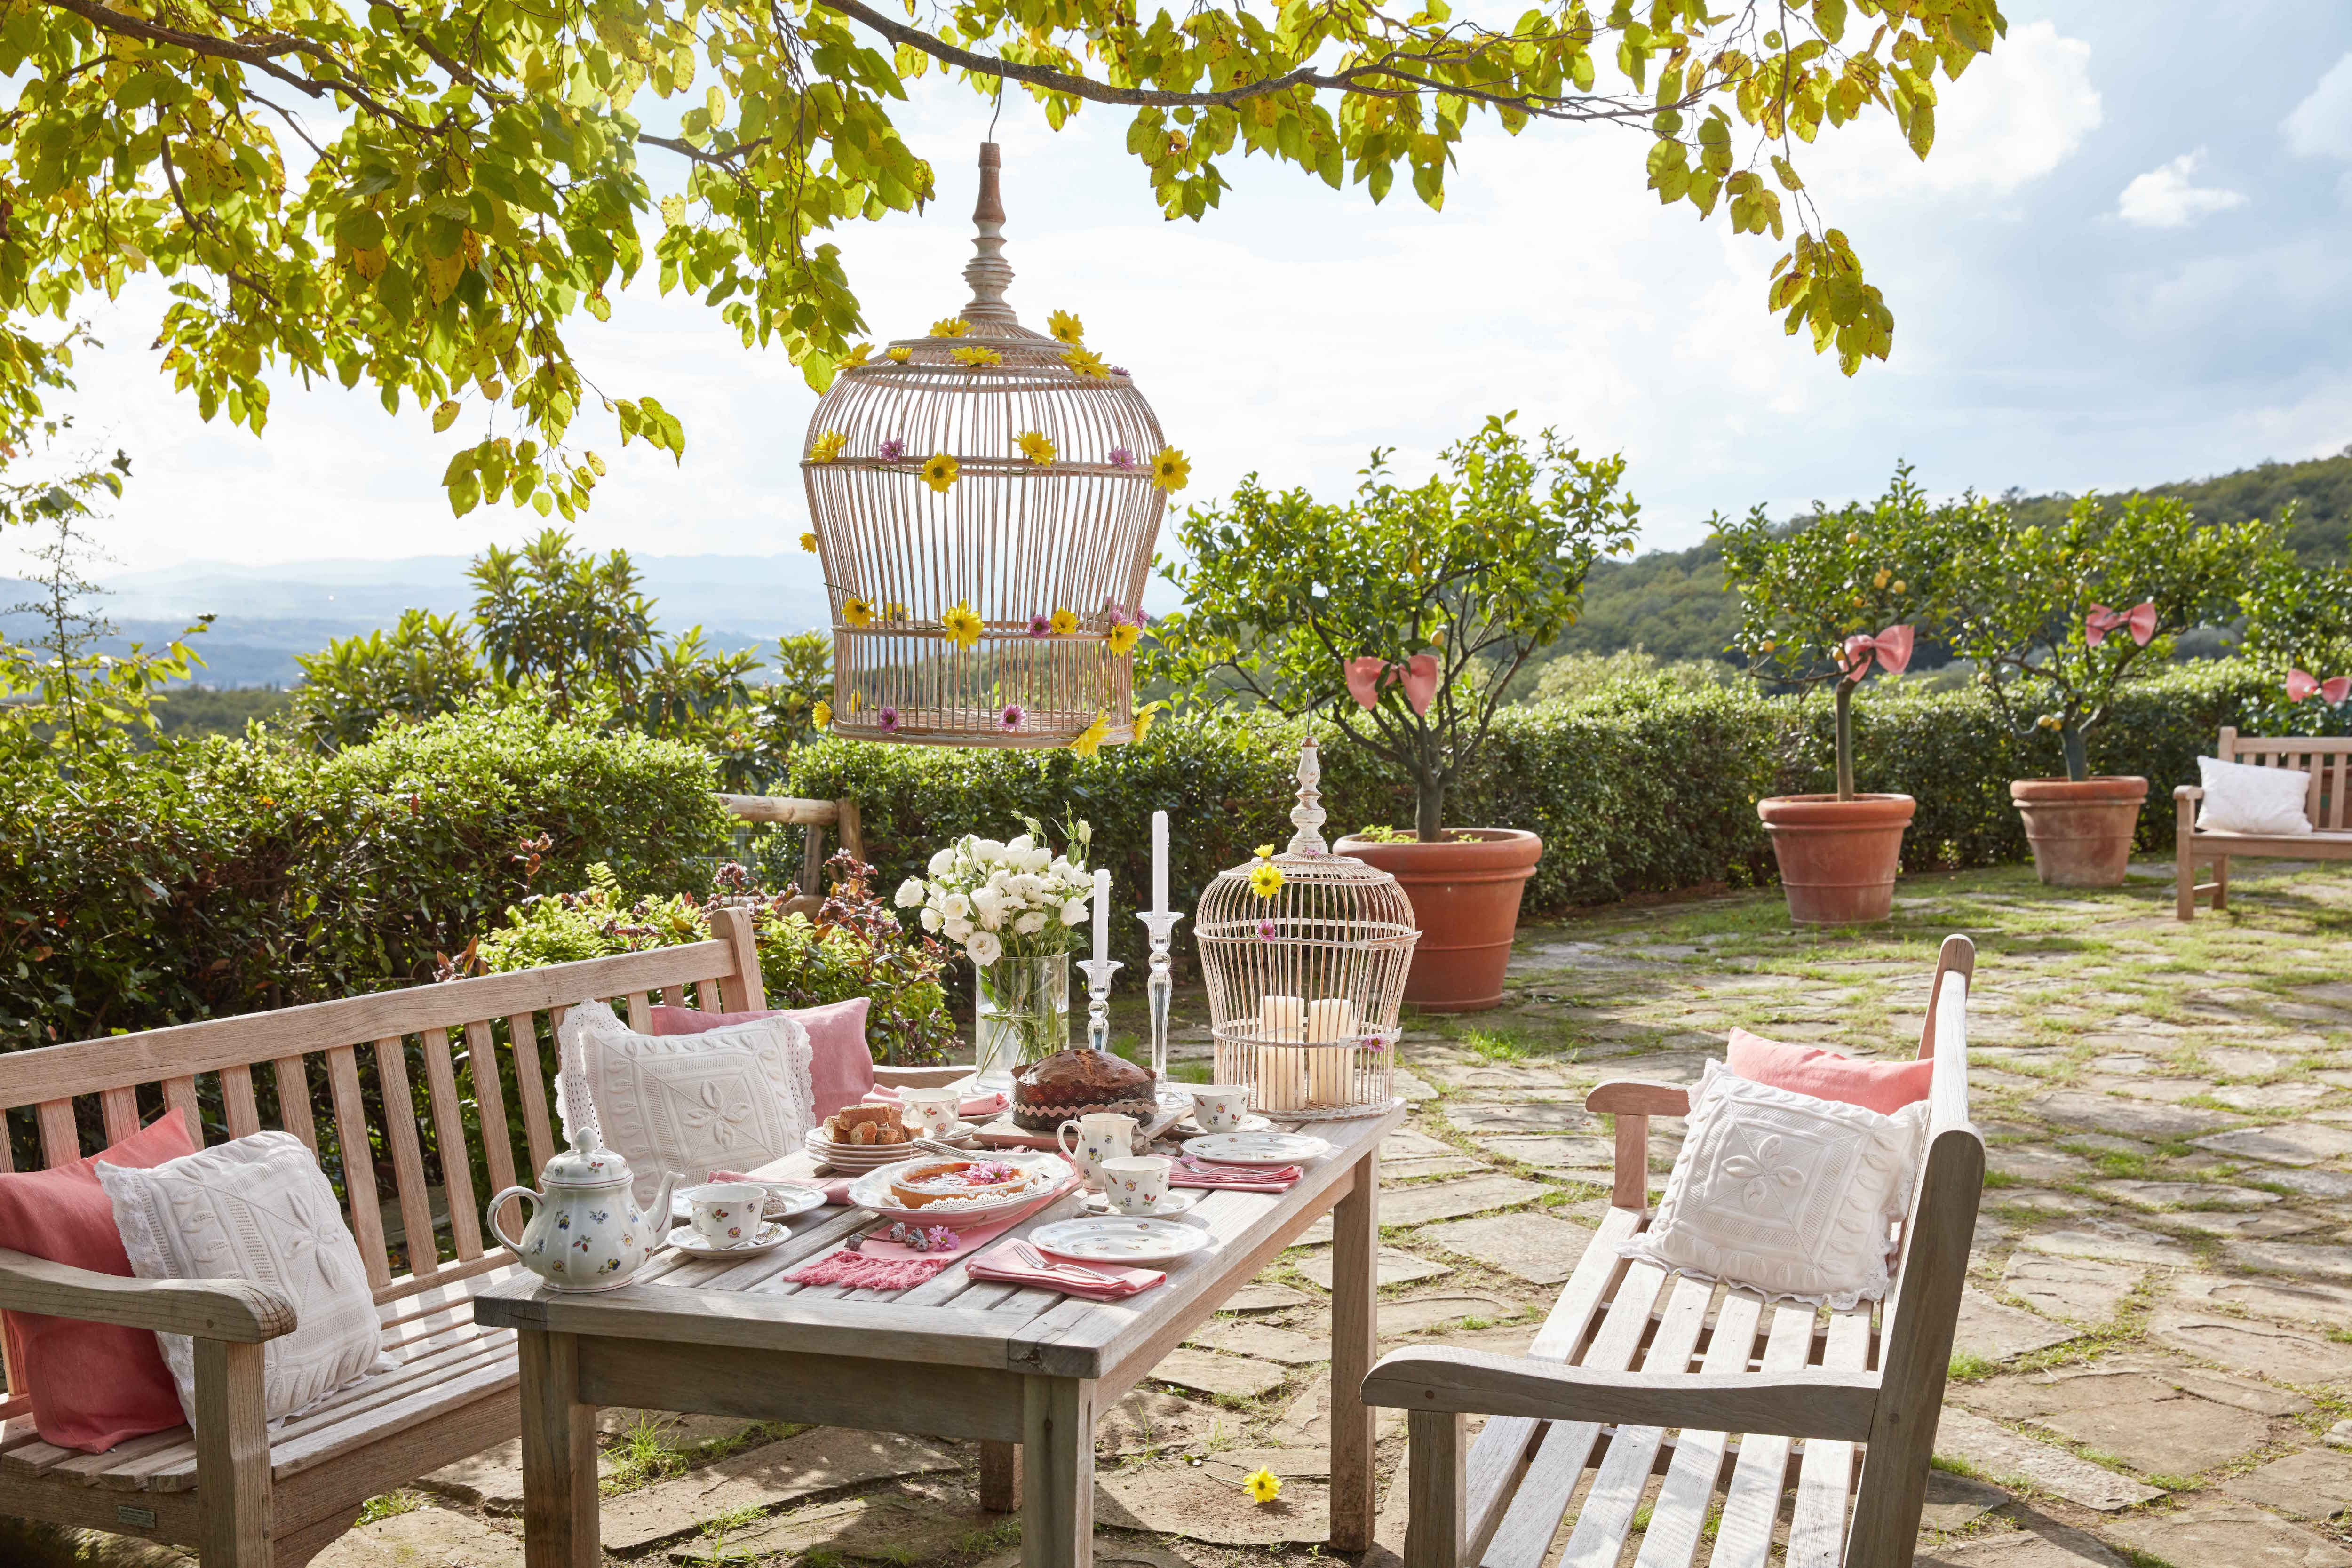 Villeroy & Boch china and tableware at outdoor tea party table